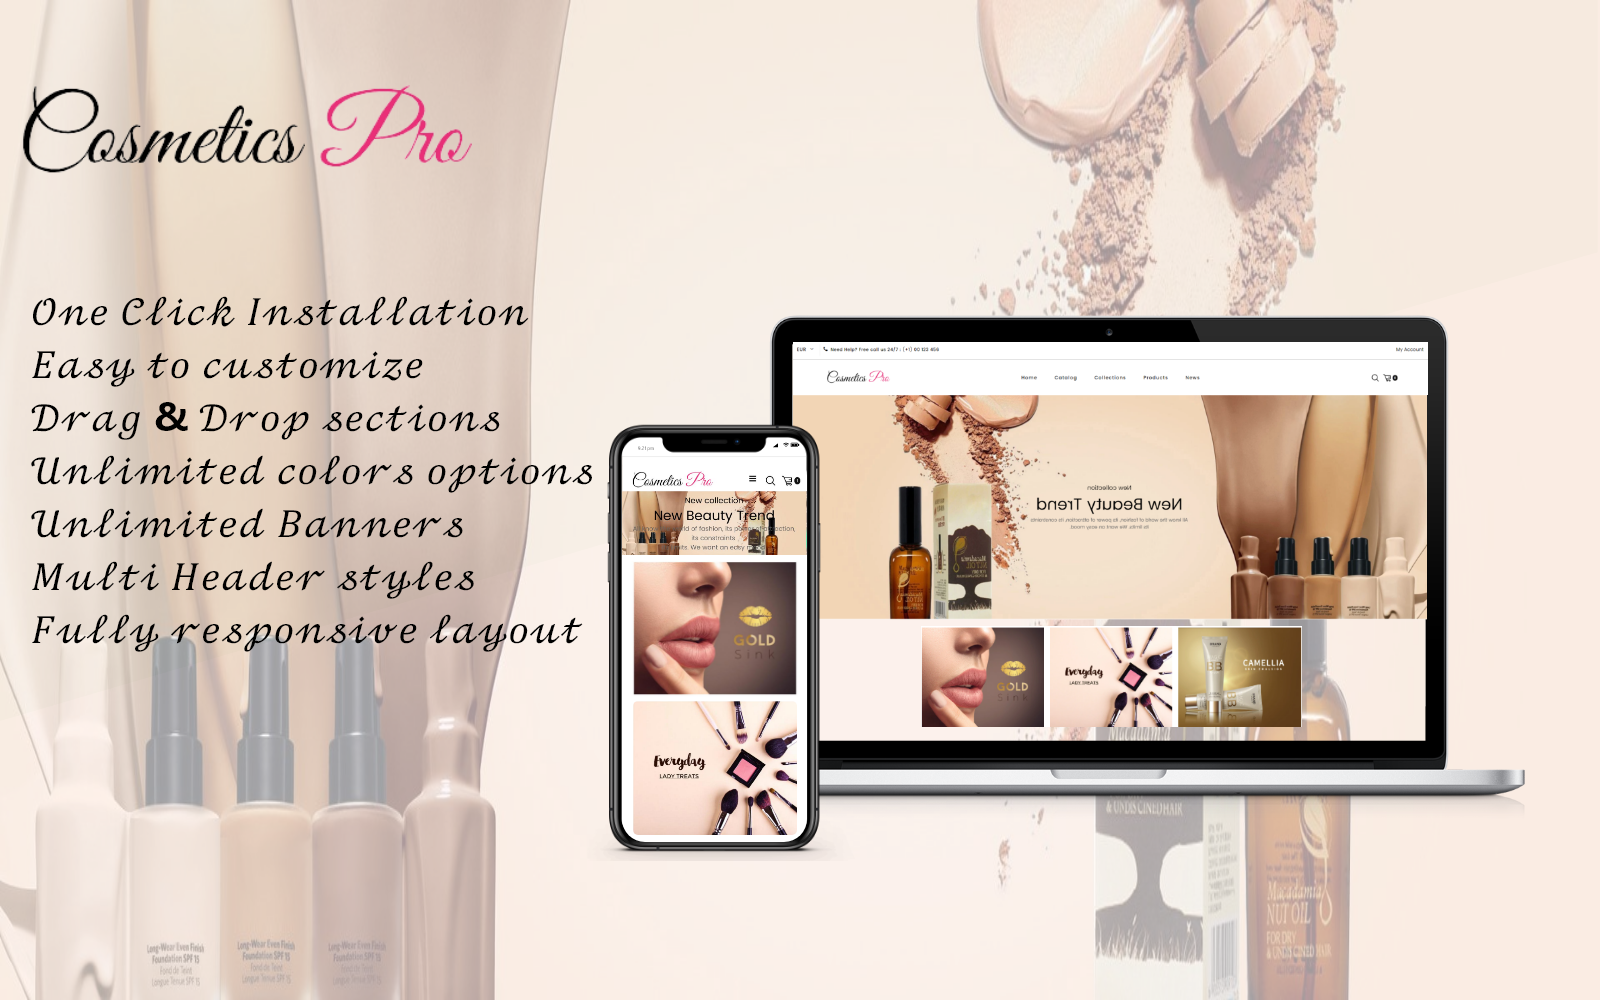 Cosmetic pro - Cosmetic eСommerce Clean Shopify Theme